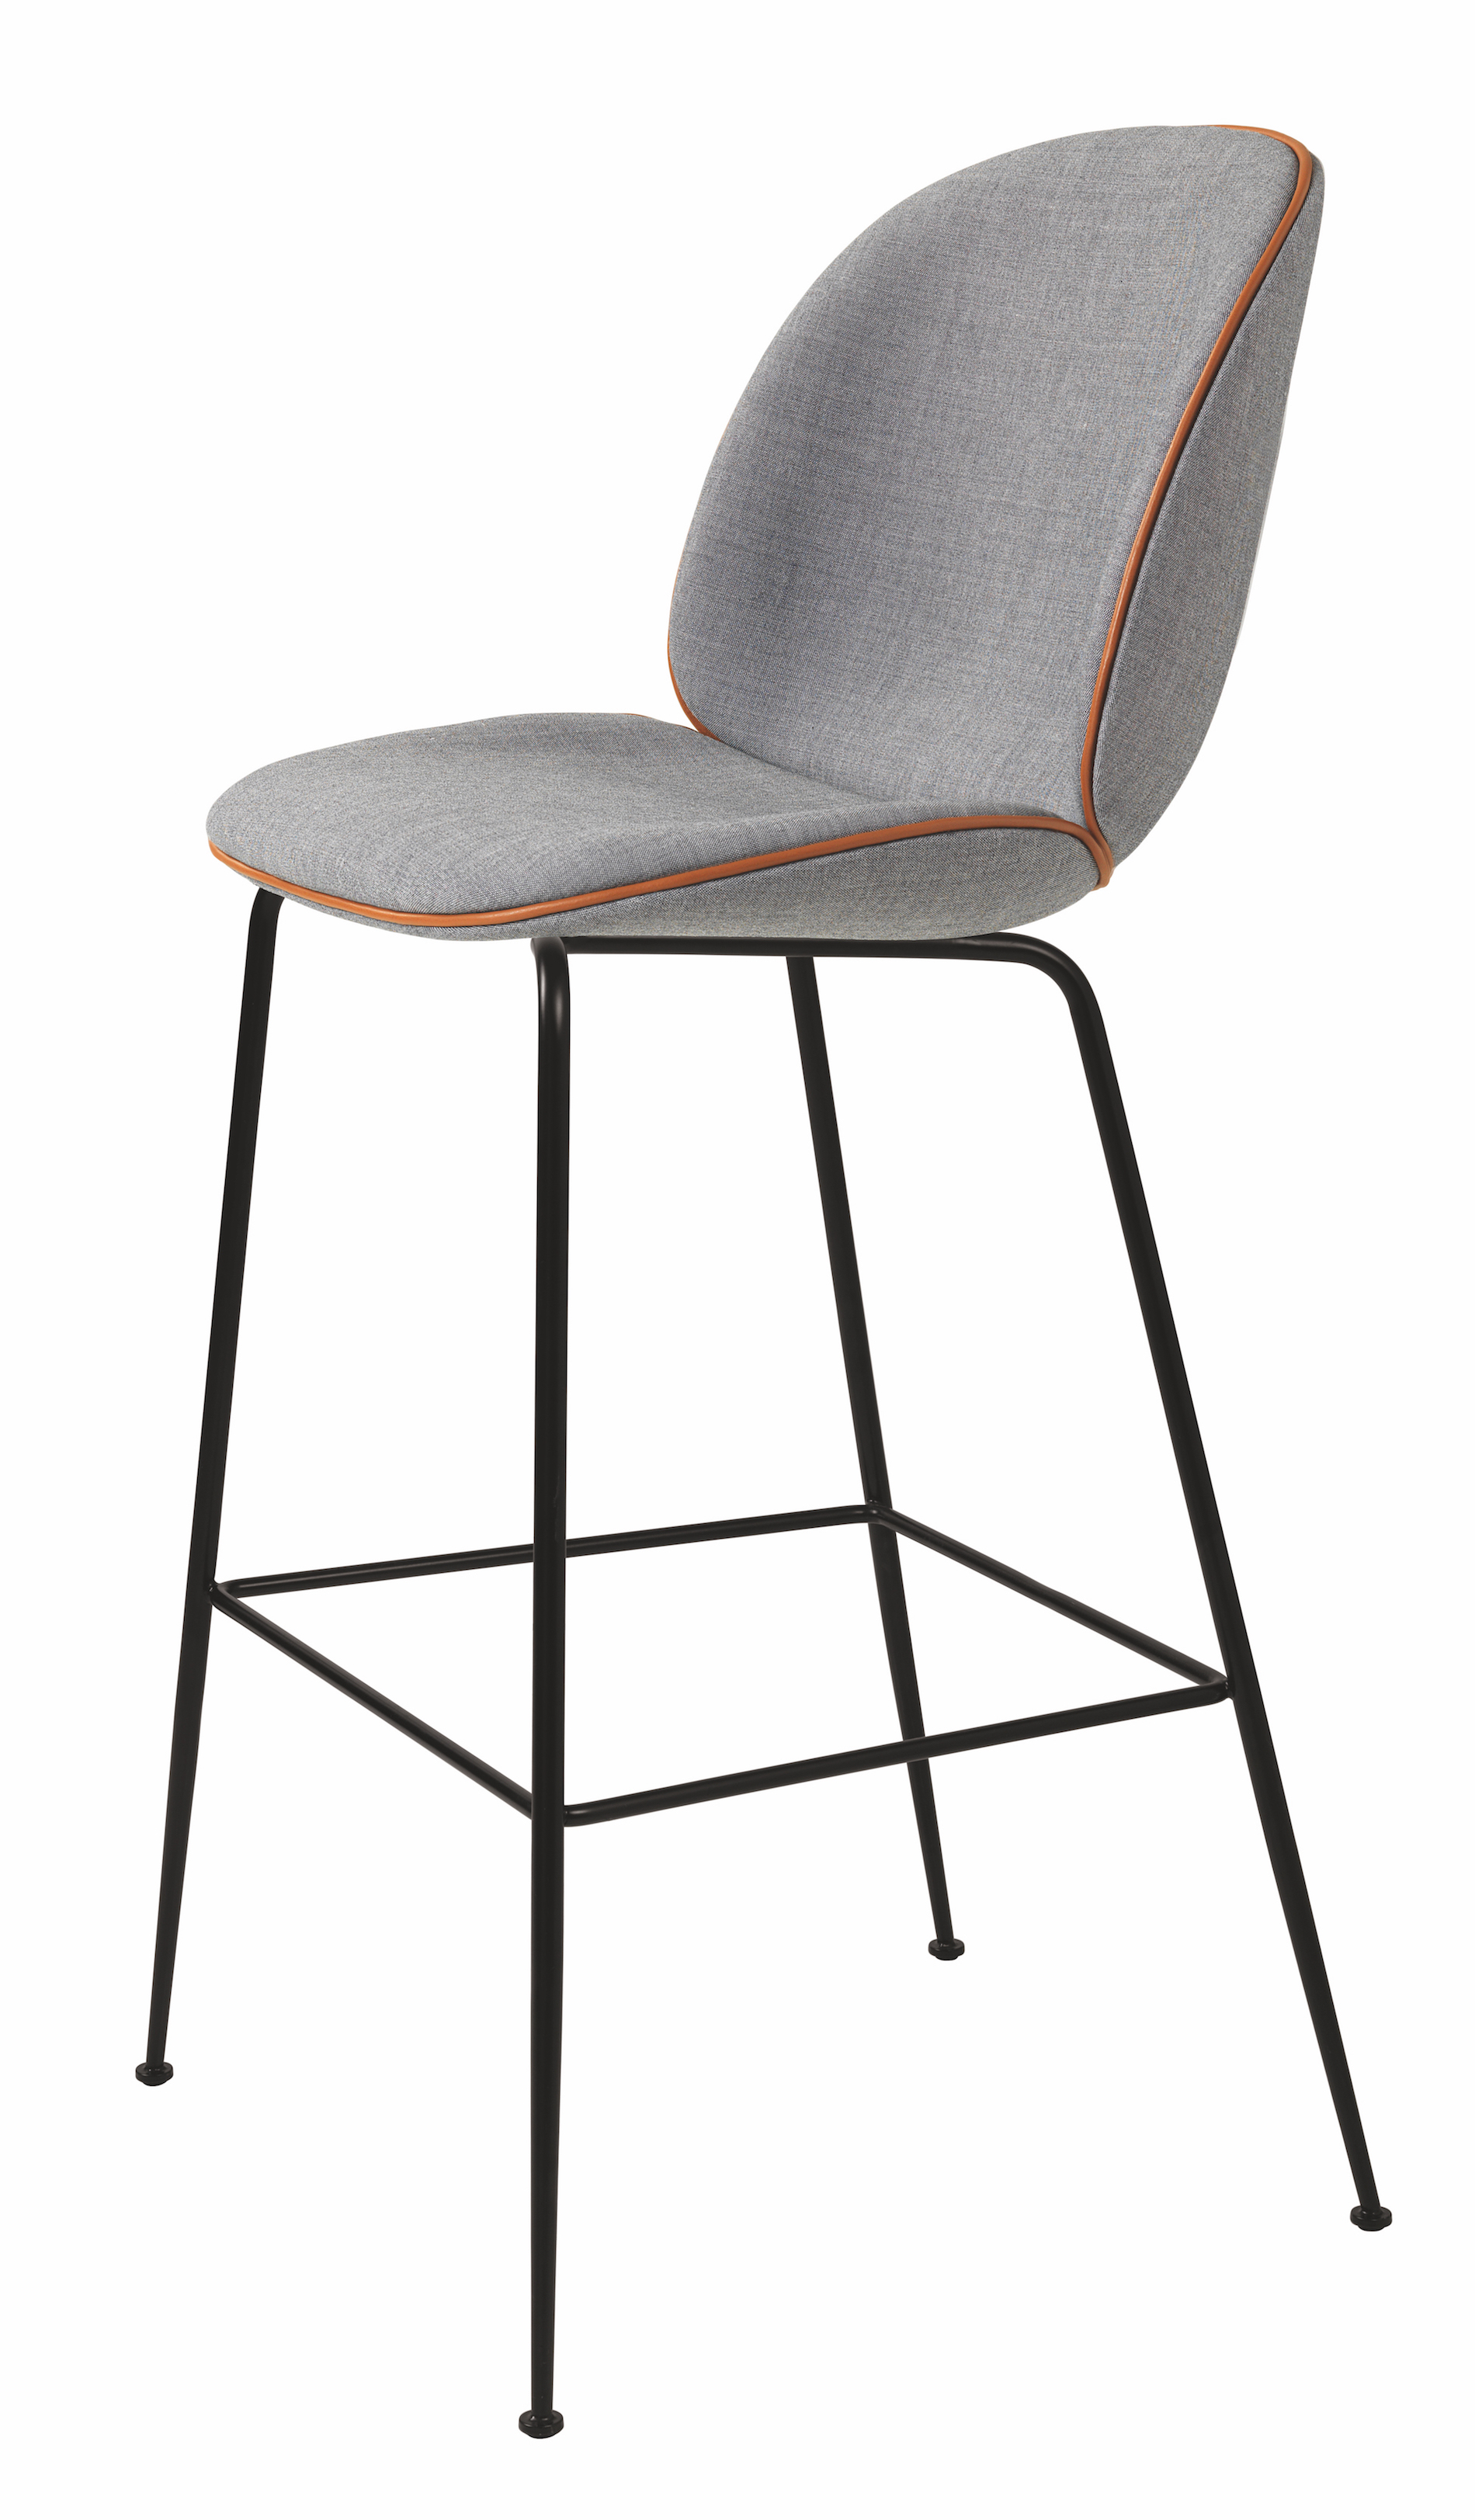 Gubi Beetle Bar Chair Design Gamfratesi